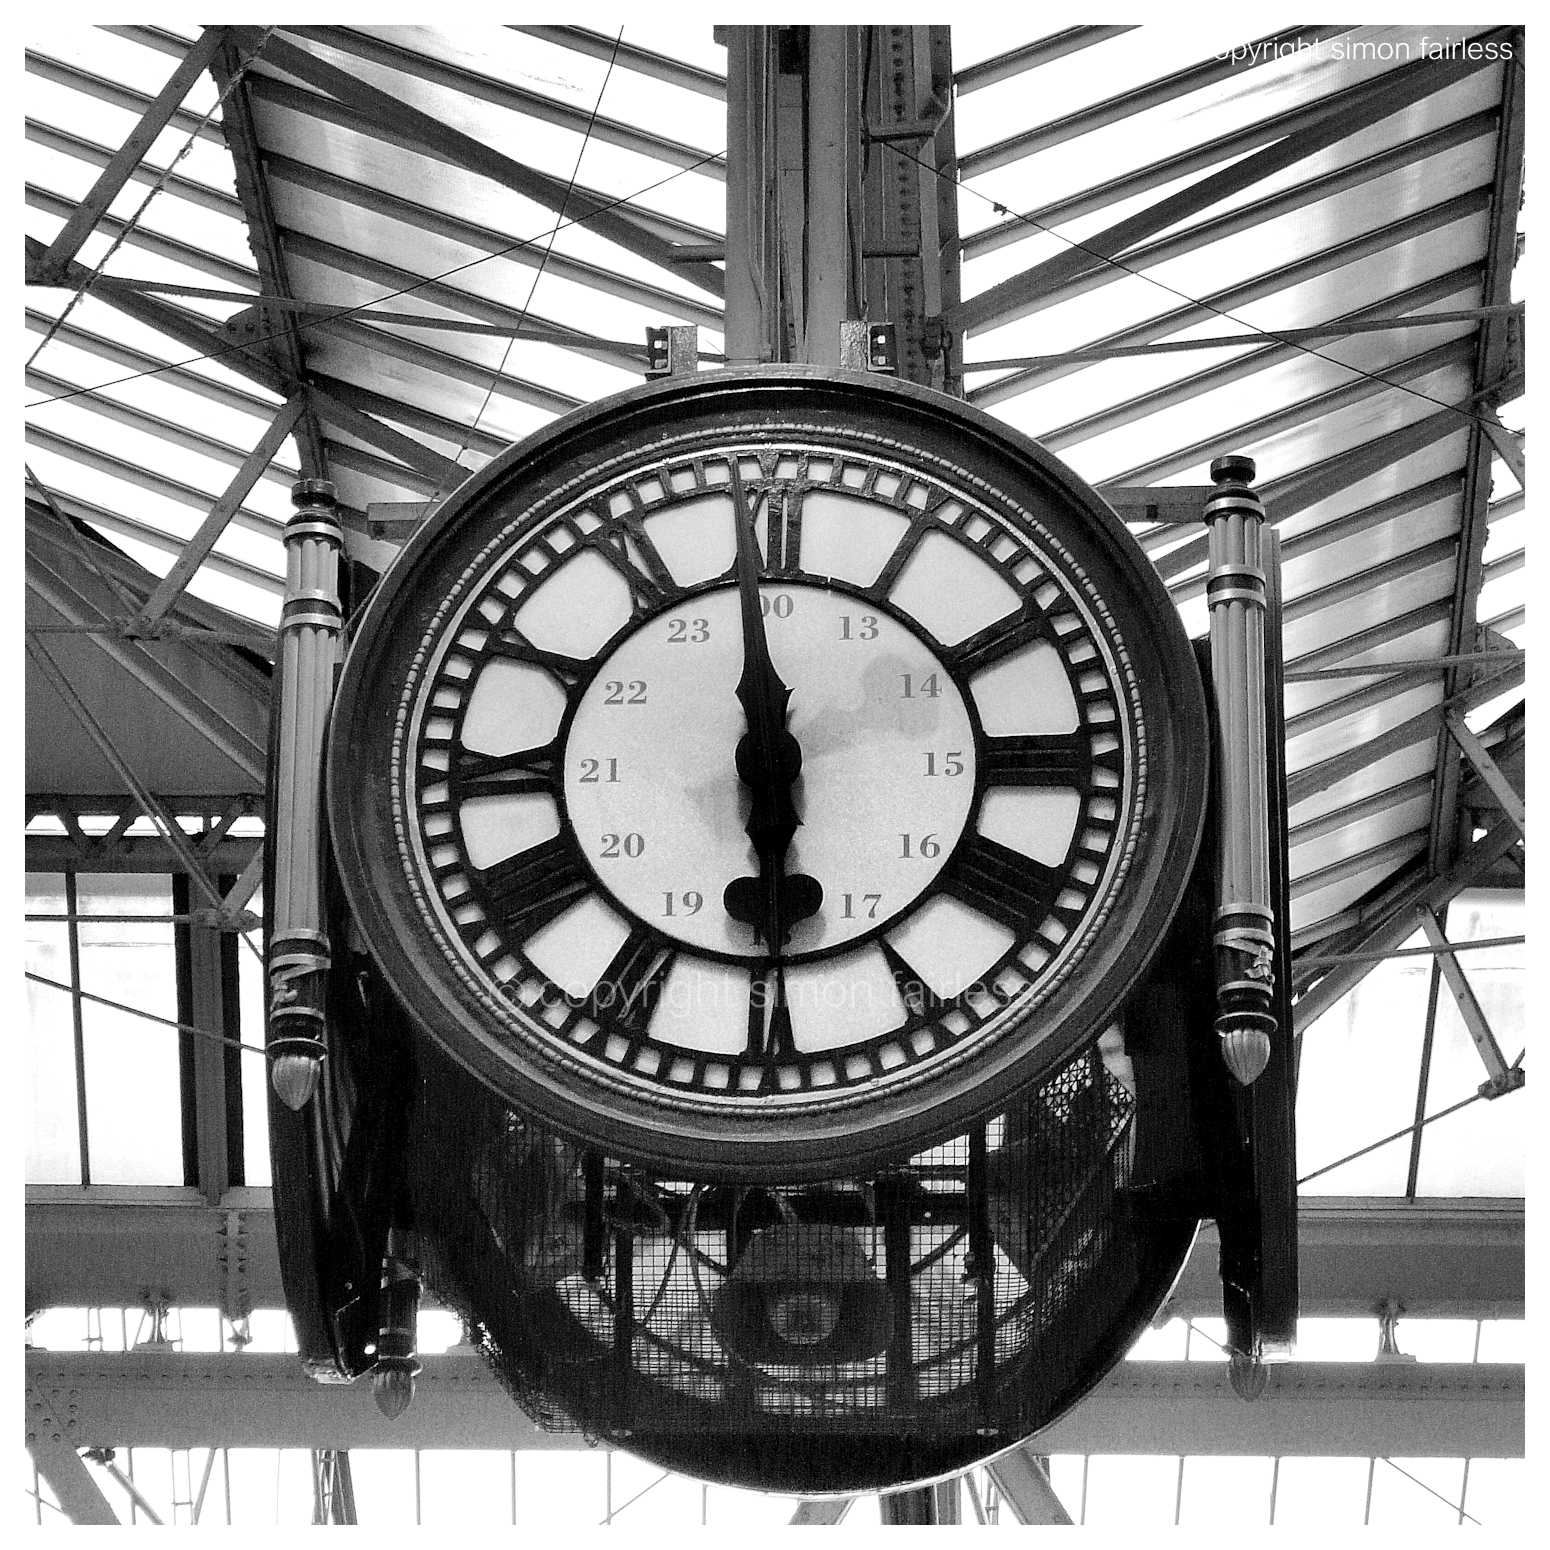 Waterloo Station image